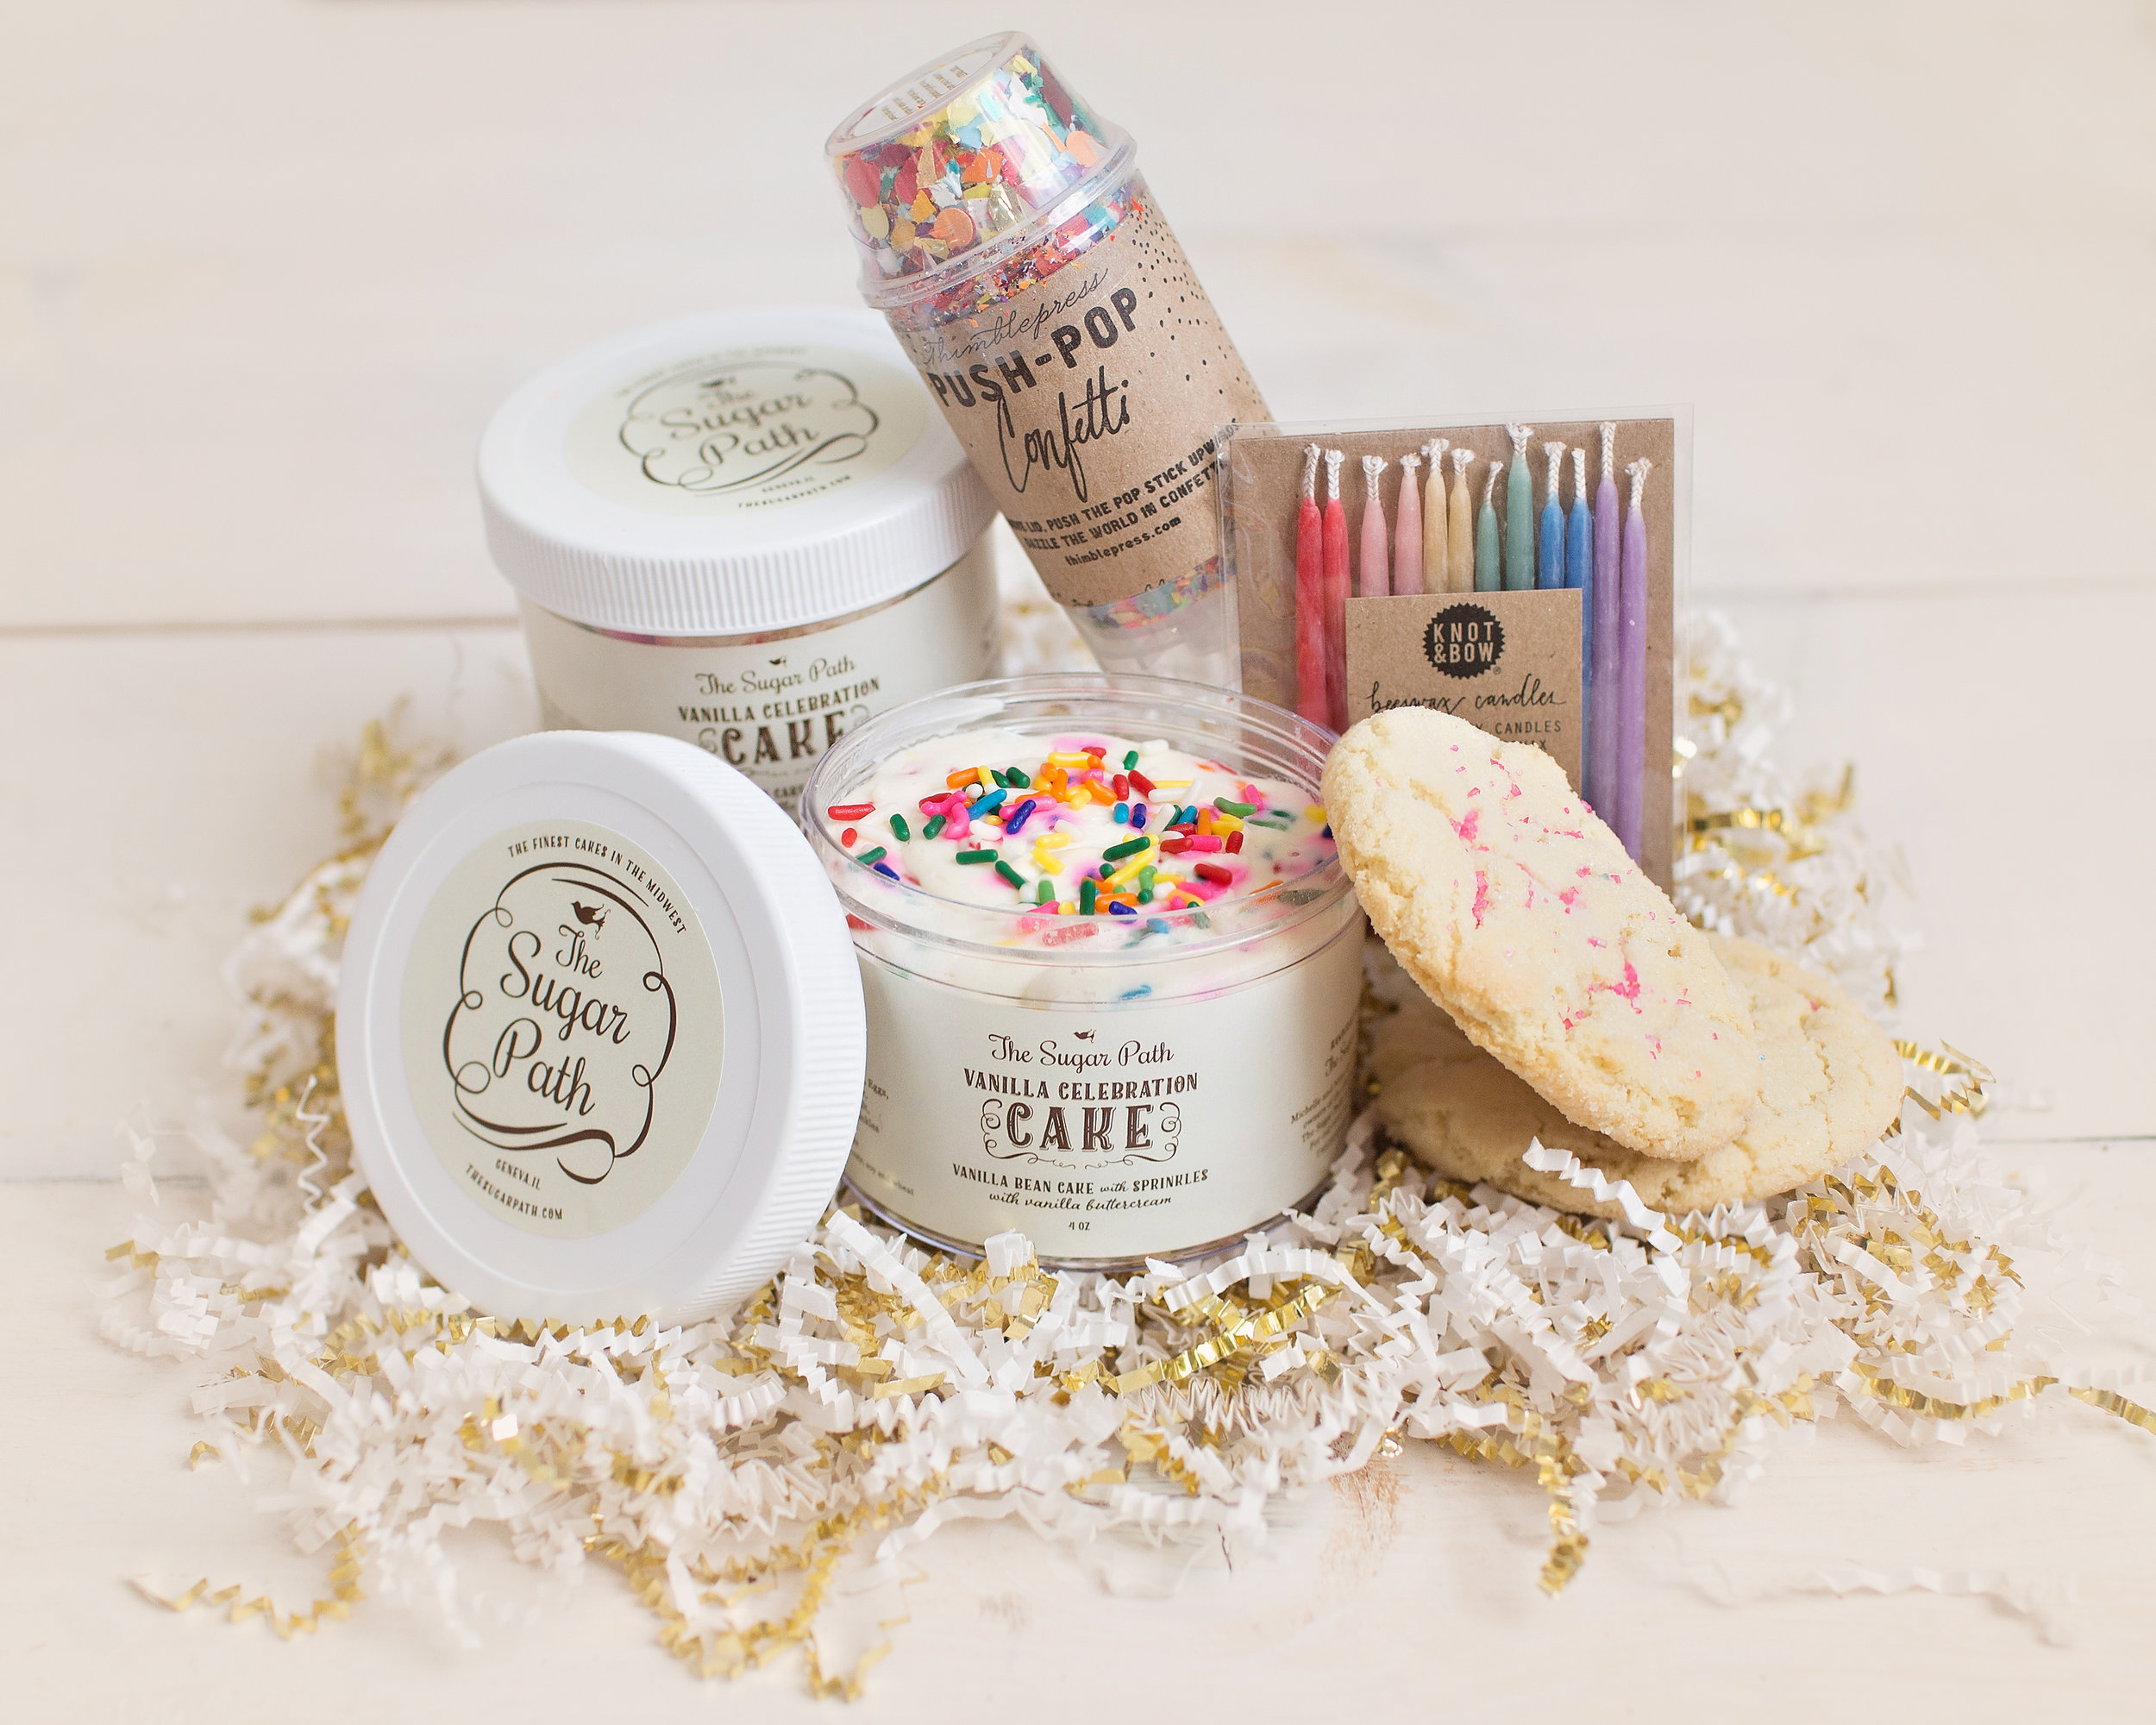 Our Birthday Box is one of our most popular gifts. It includes Confetti Cake Jars, Cookies, Candles and Confetti